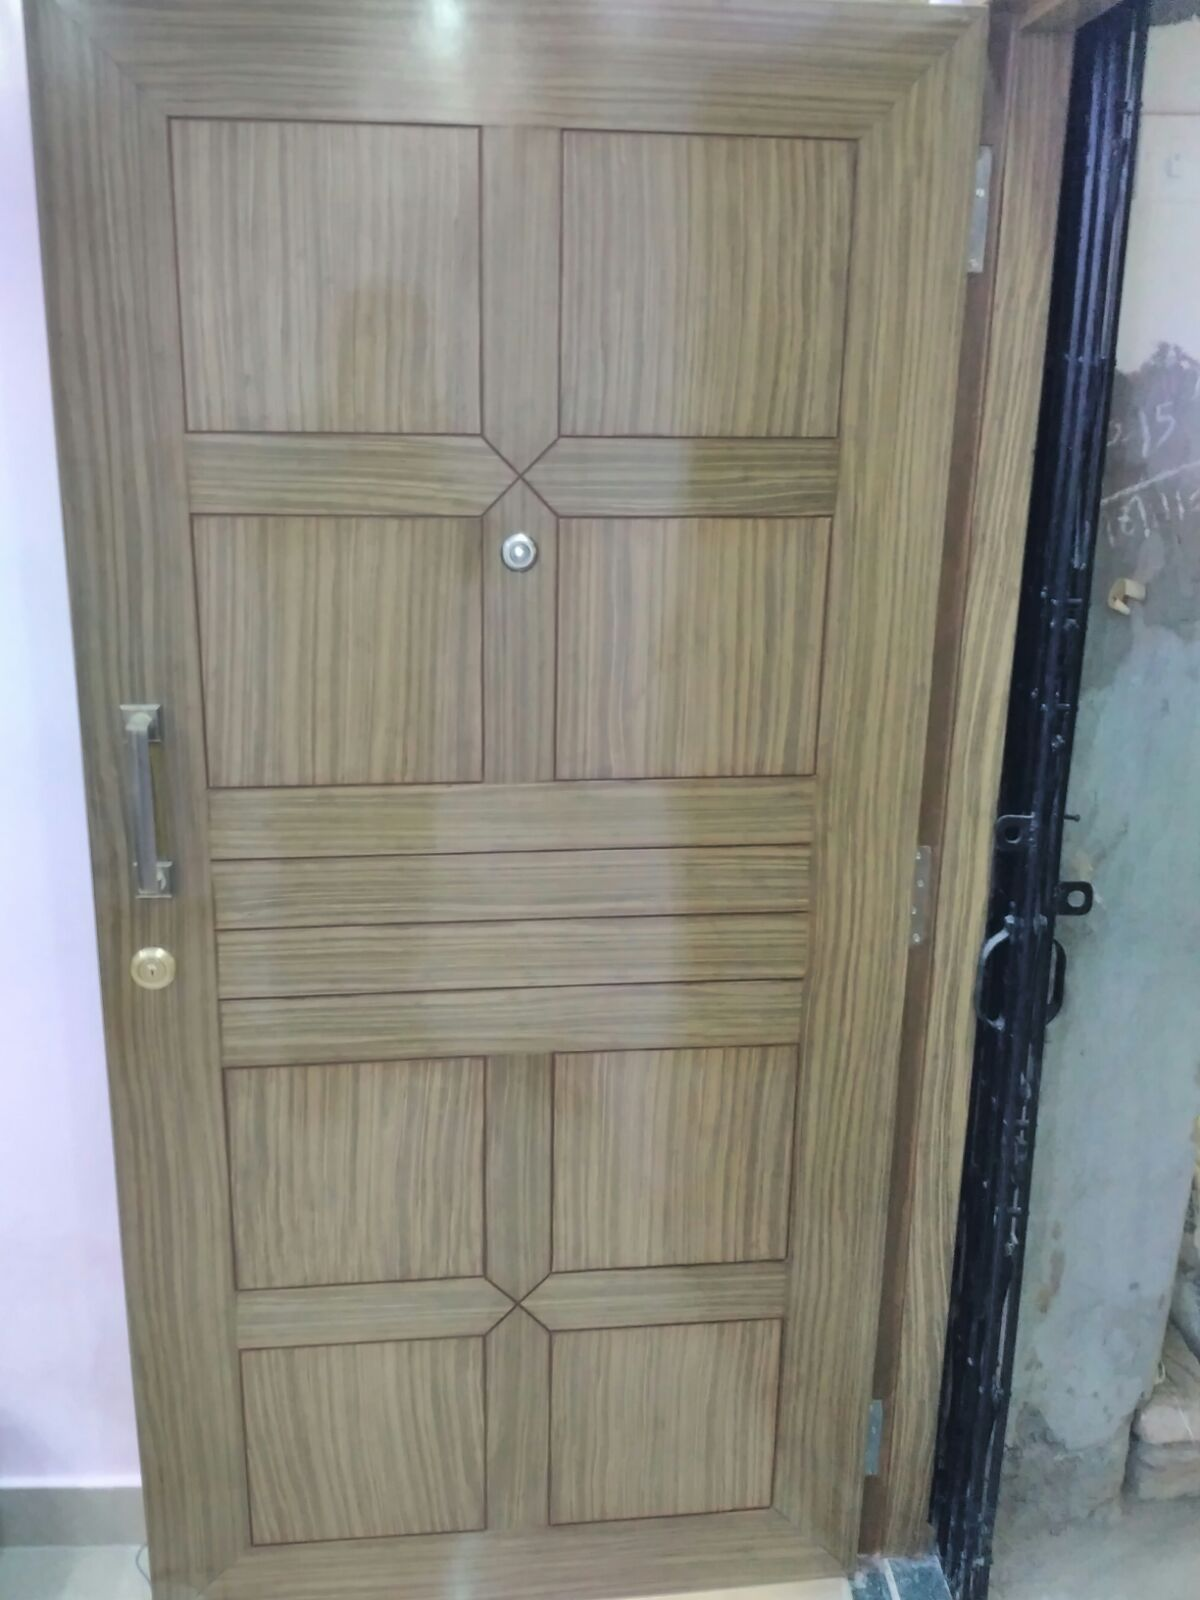 Veneer design on main door efficient enterprise for Main door design